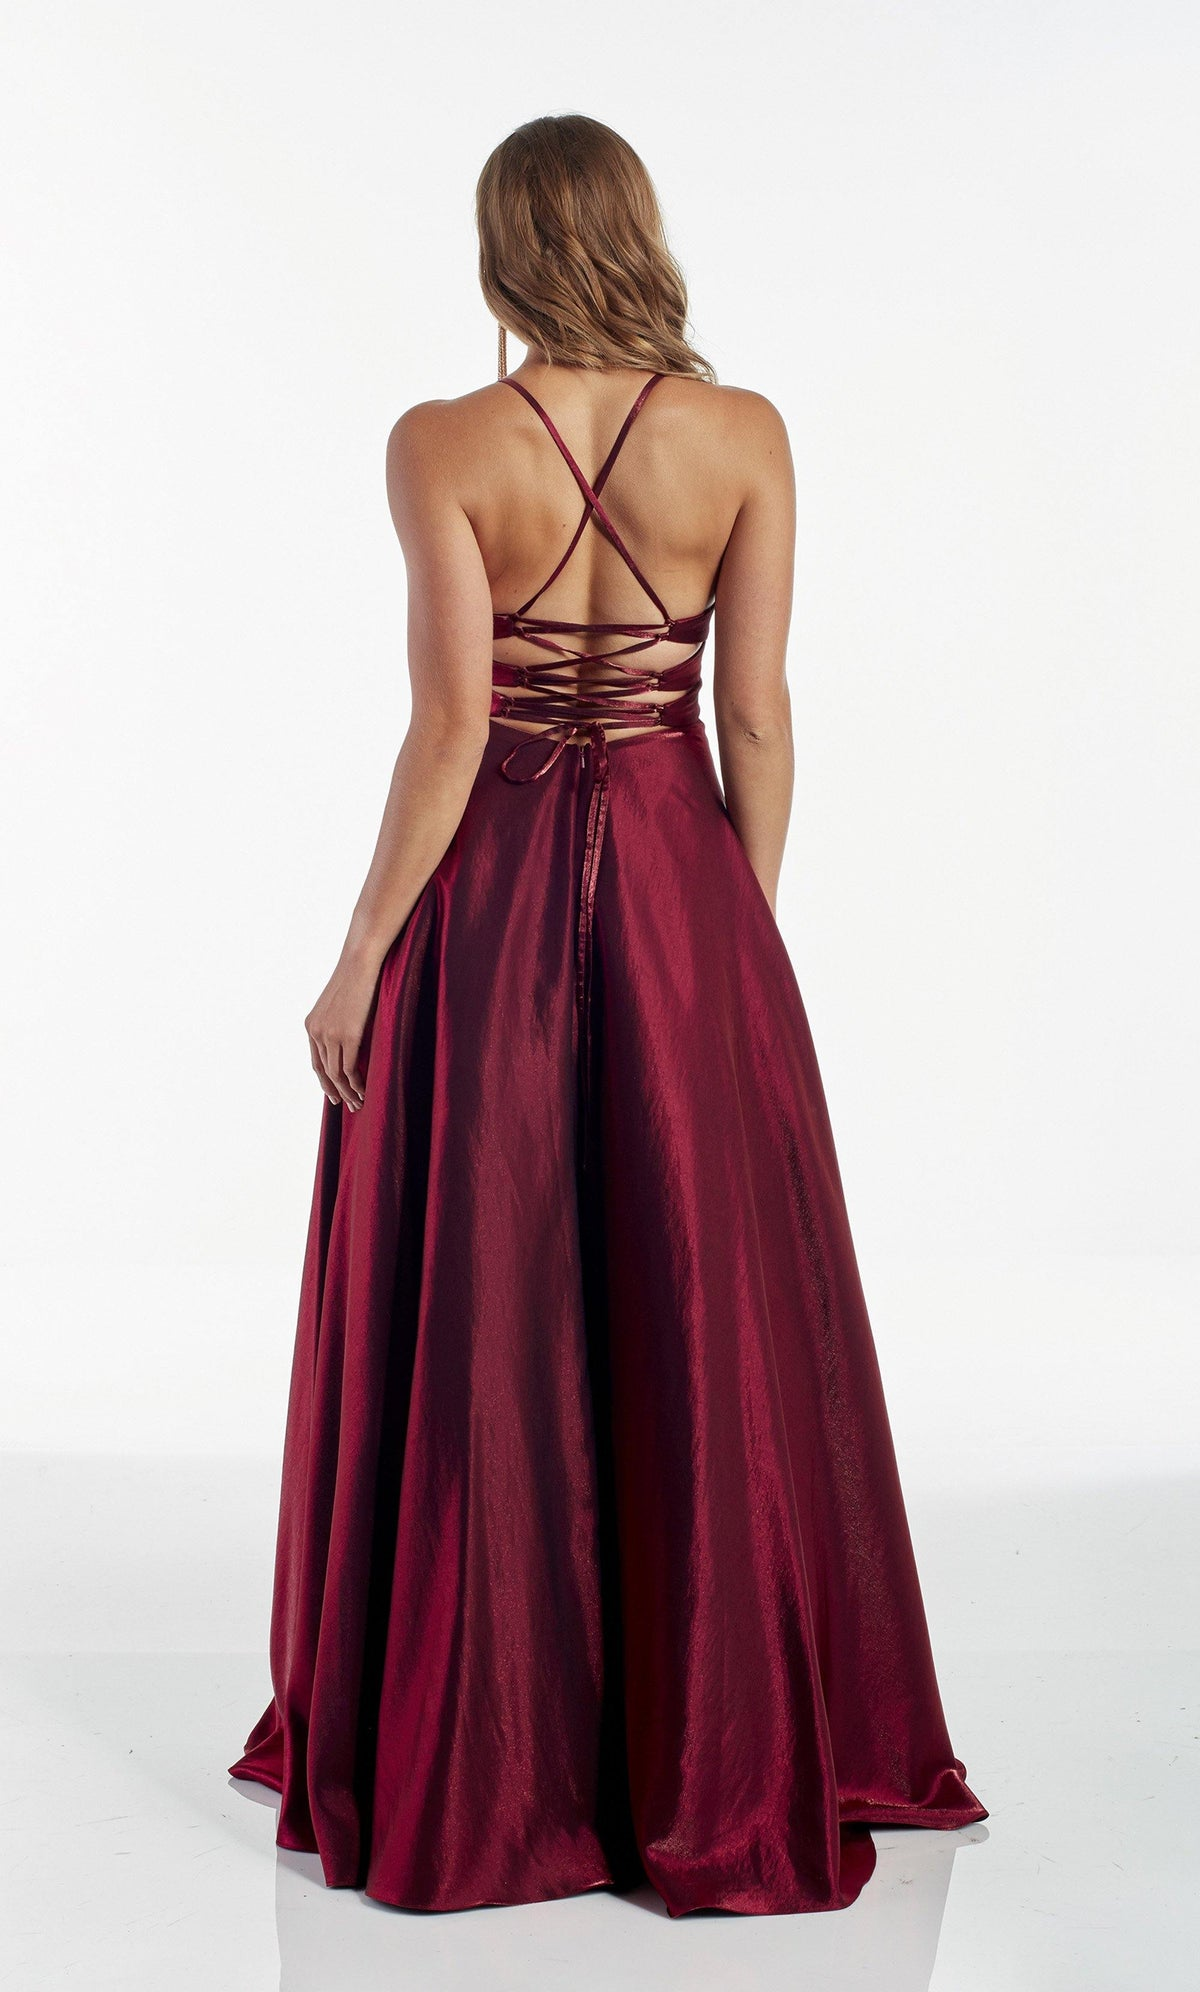 Dark Red ballgown with a strappy back